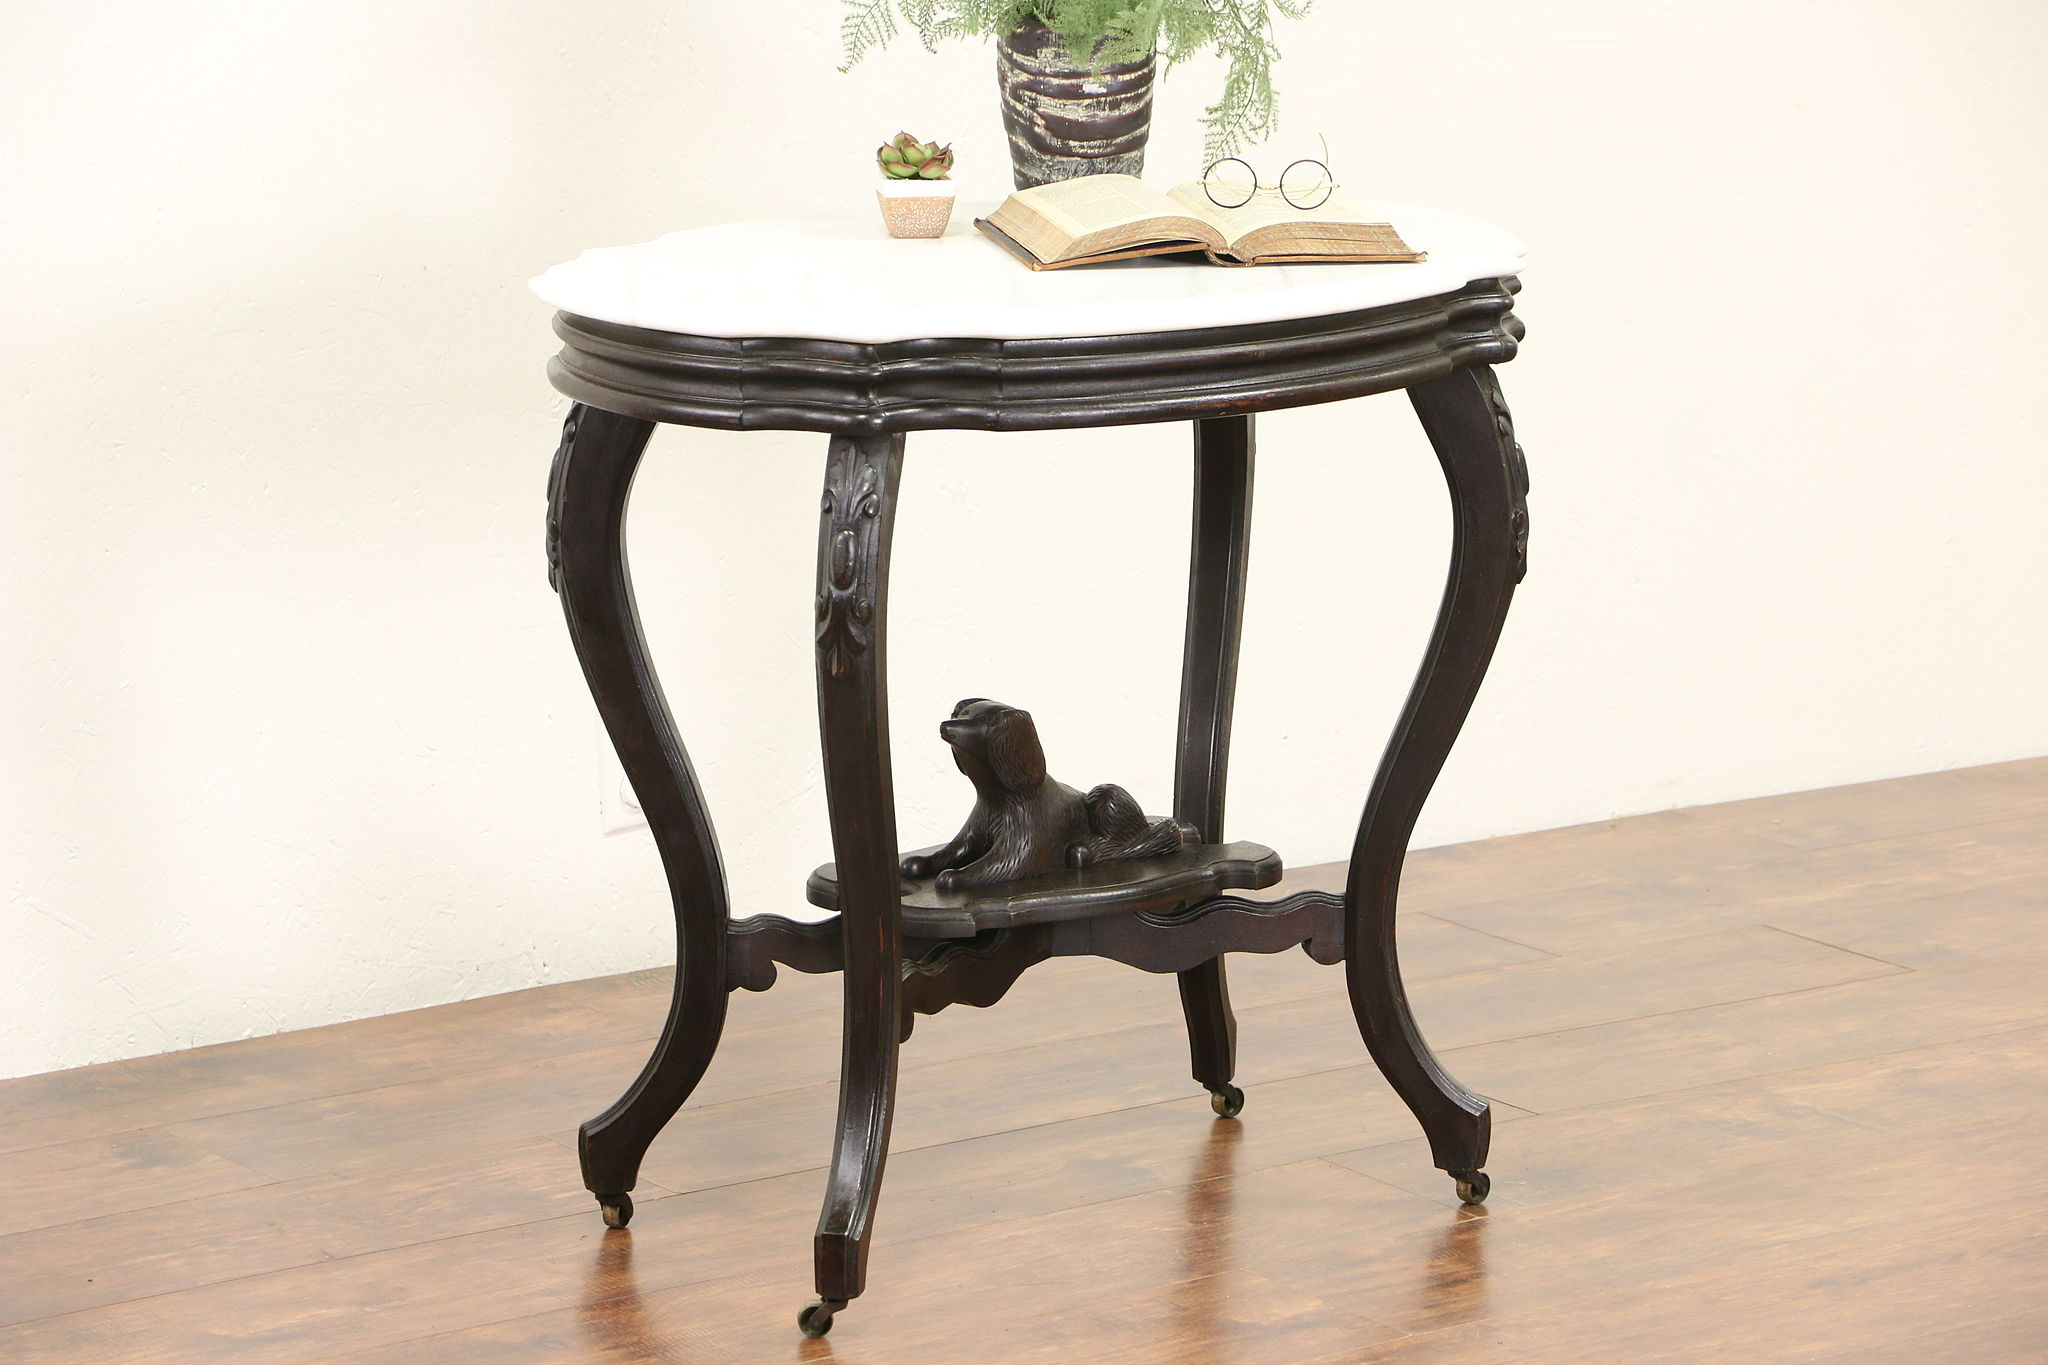 Sold victorian 1870s antique marble turtle top walnut lamp table victorian 1870s antique marble turtle top walnut lamp table dog sculpture aloadofball Images